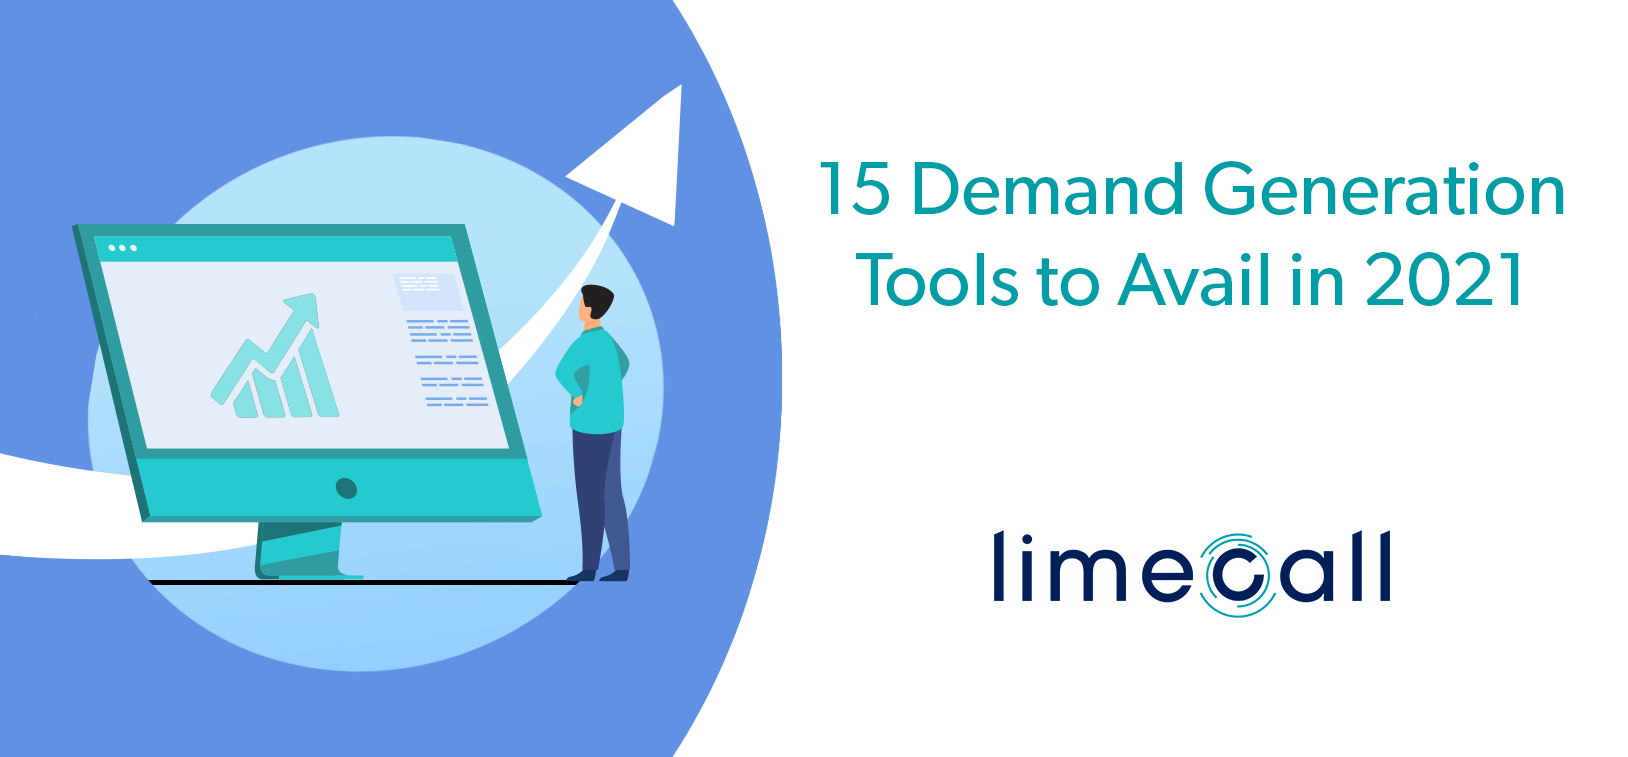 15 Demand Generation Tools to Avail in 2021